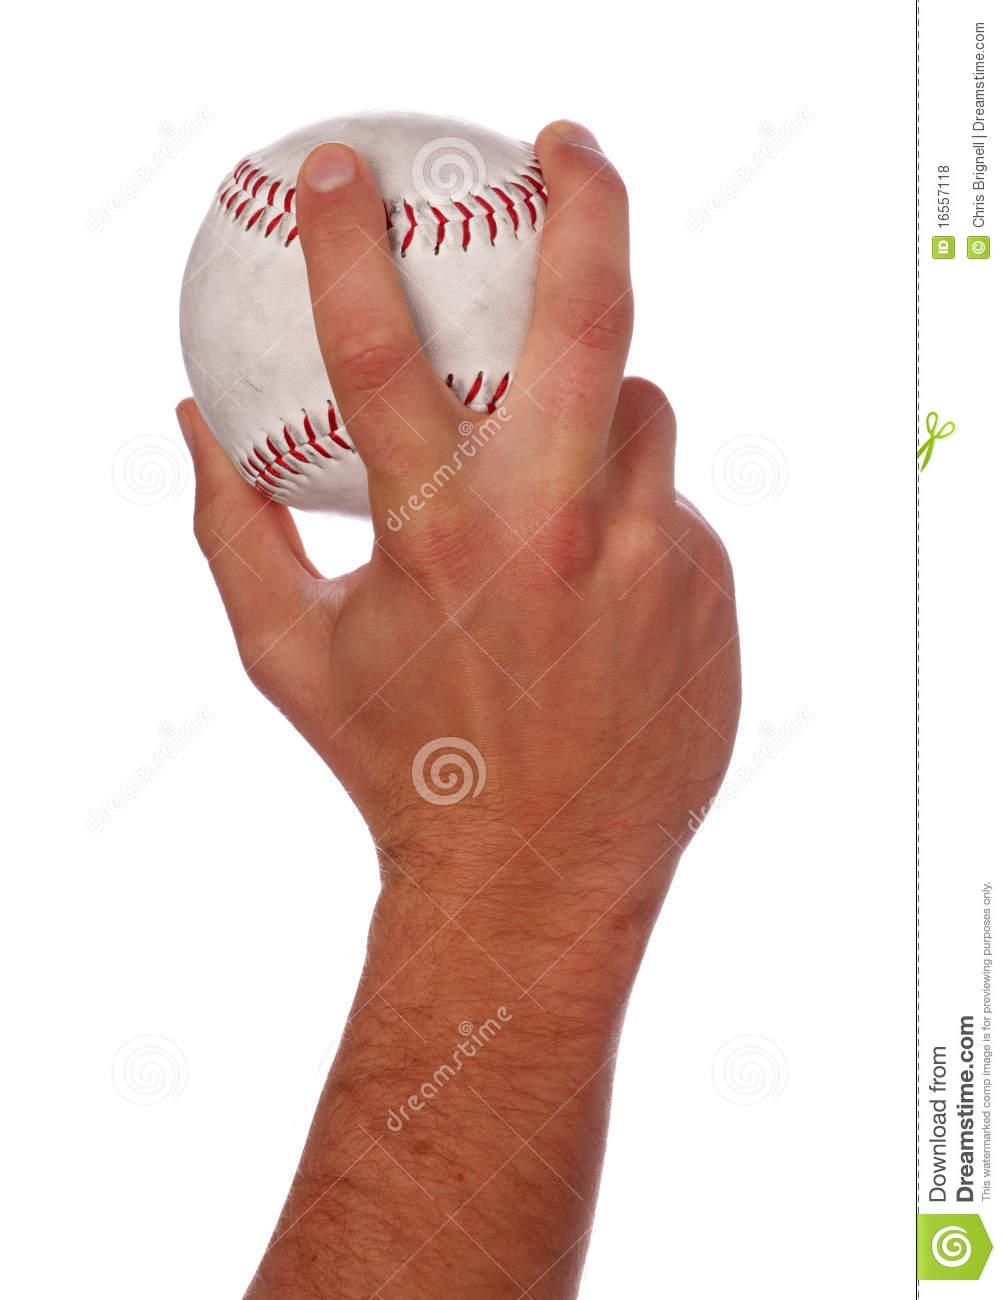 Man Throwing Softball Ball Royalty Free Stock Photos - Image: 16557118